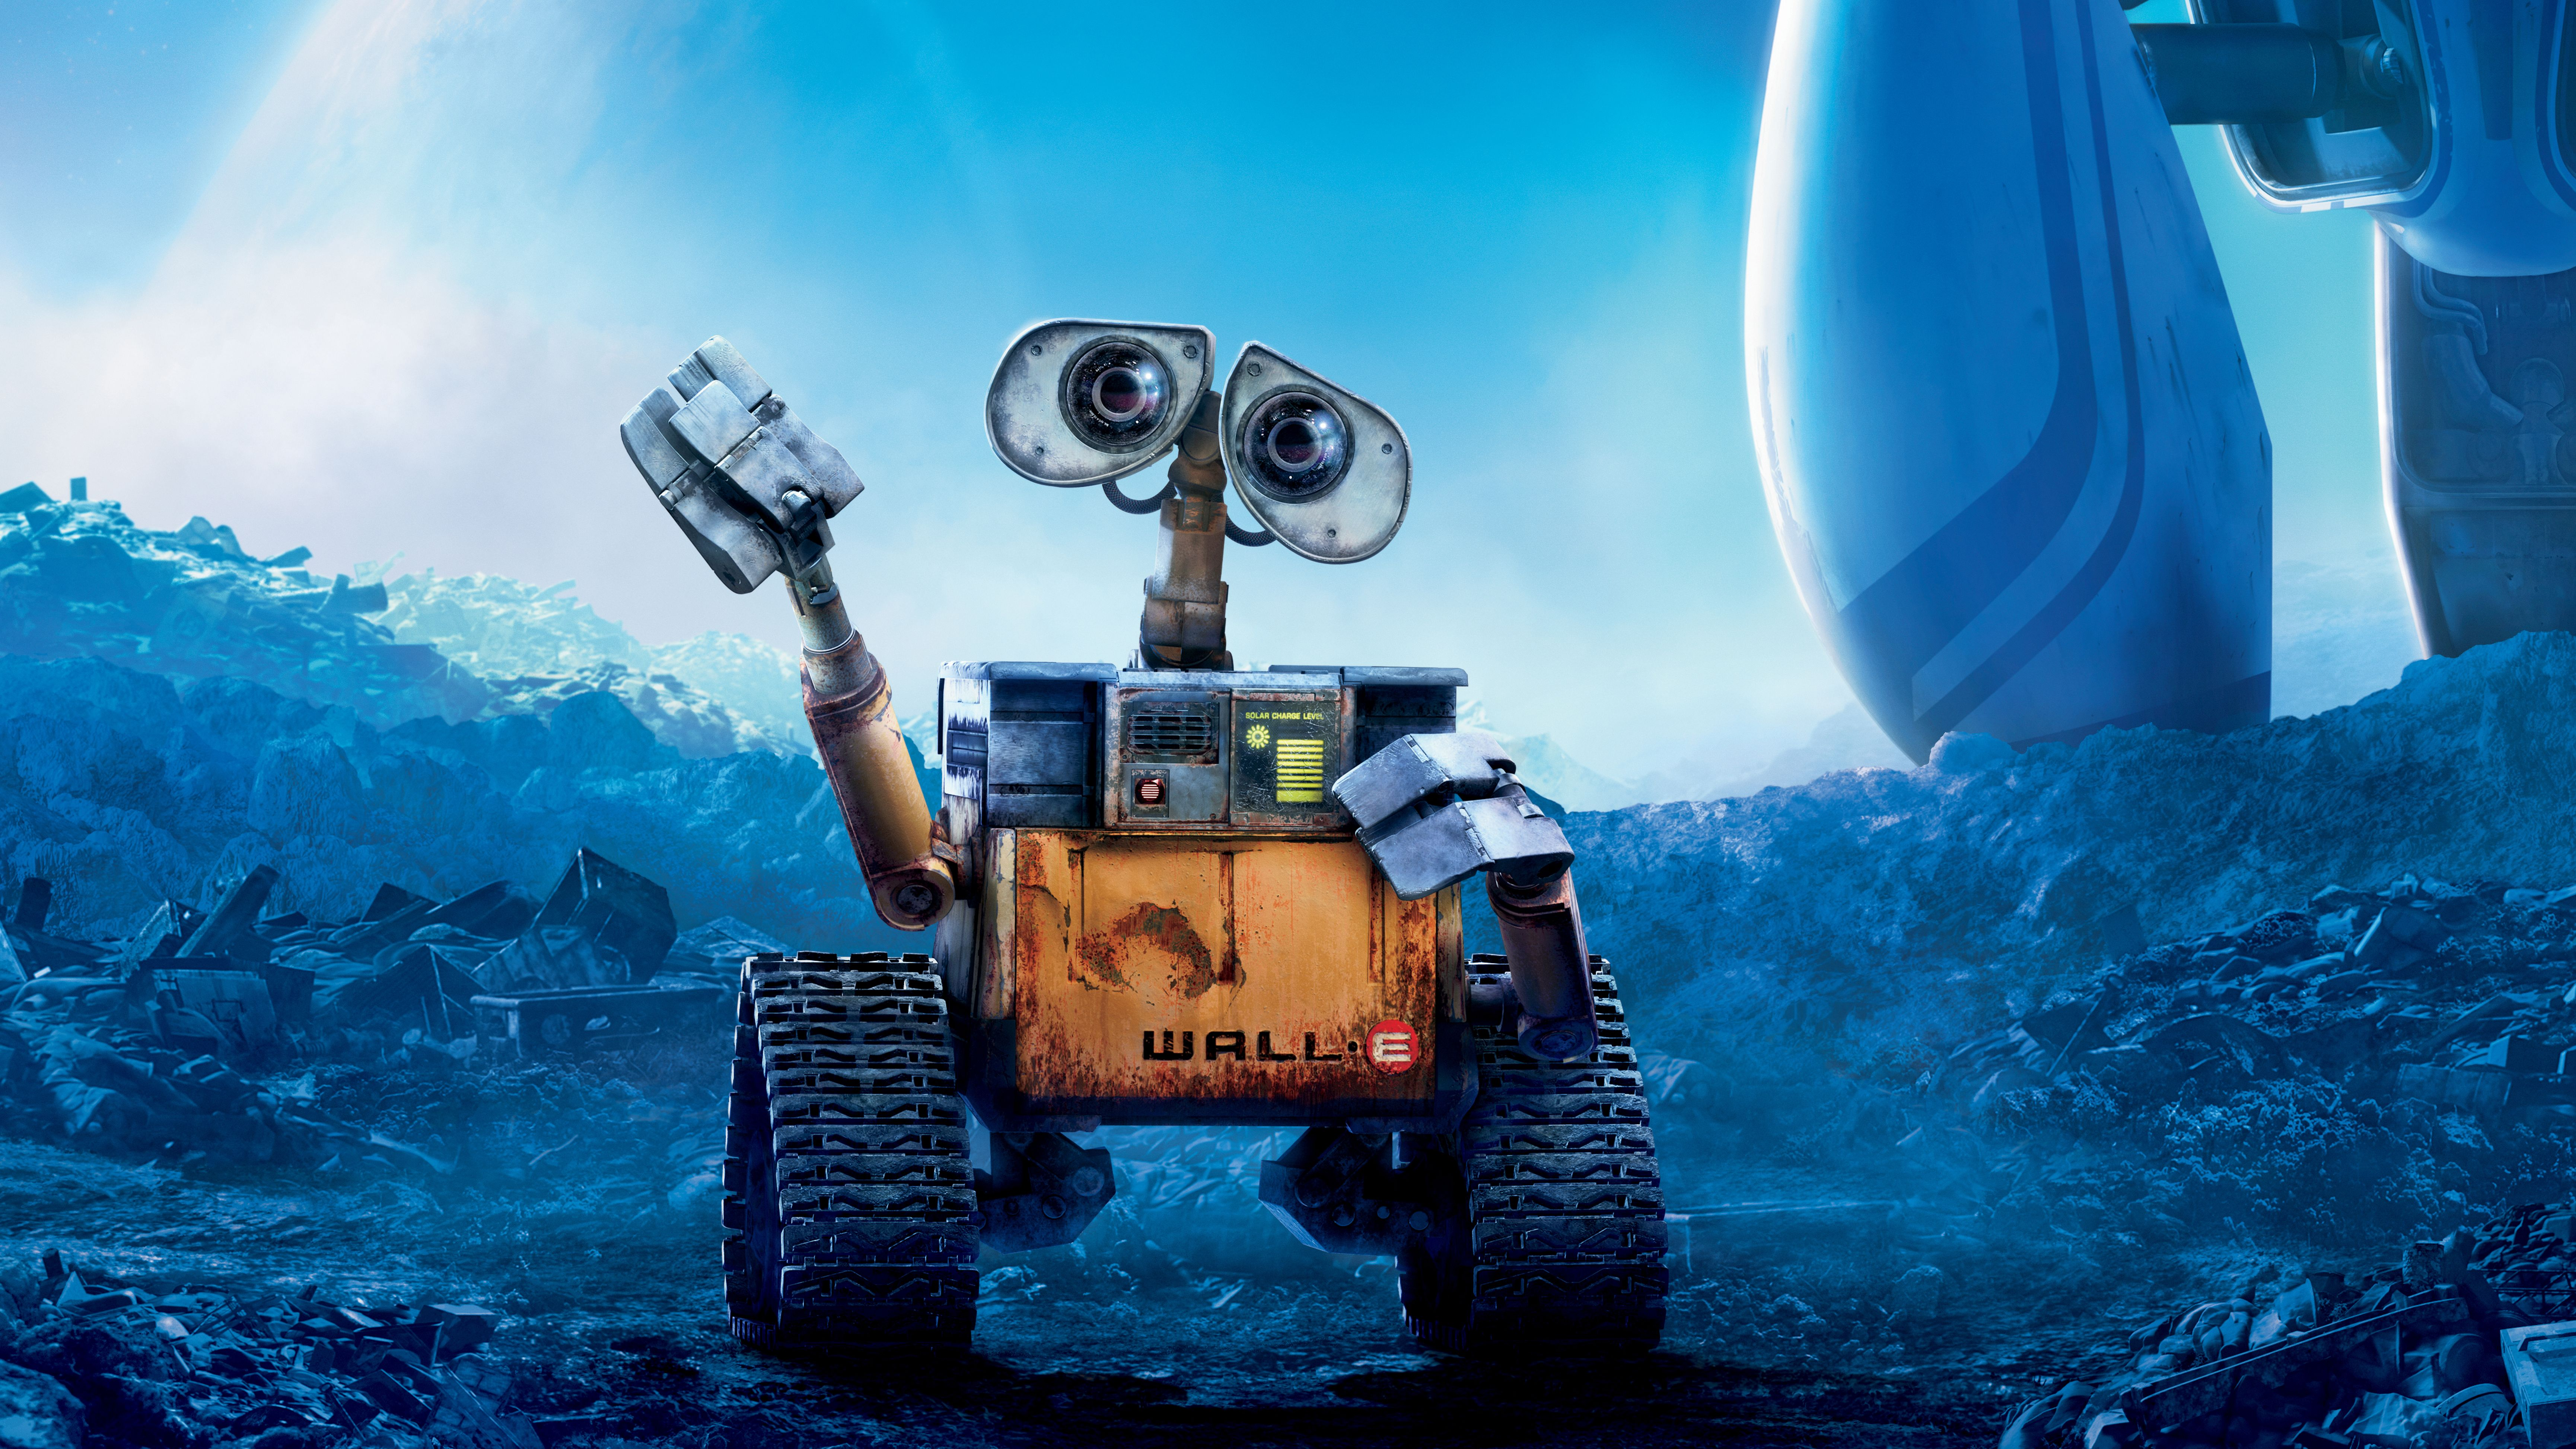 Wall E 4k Wall E 4k Wallpapers In 2021 Post Apocalyptic Movies Apocalyptic Movies Best Post Apocalyptic Movies